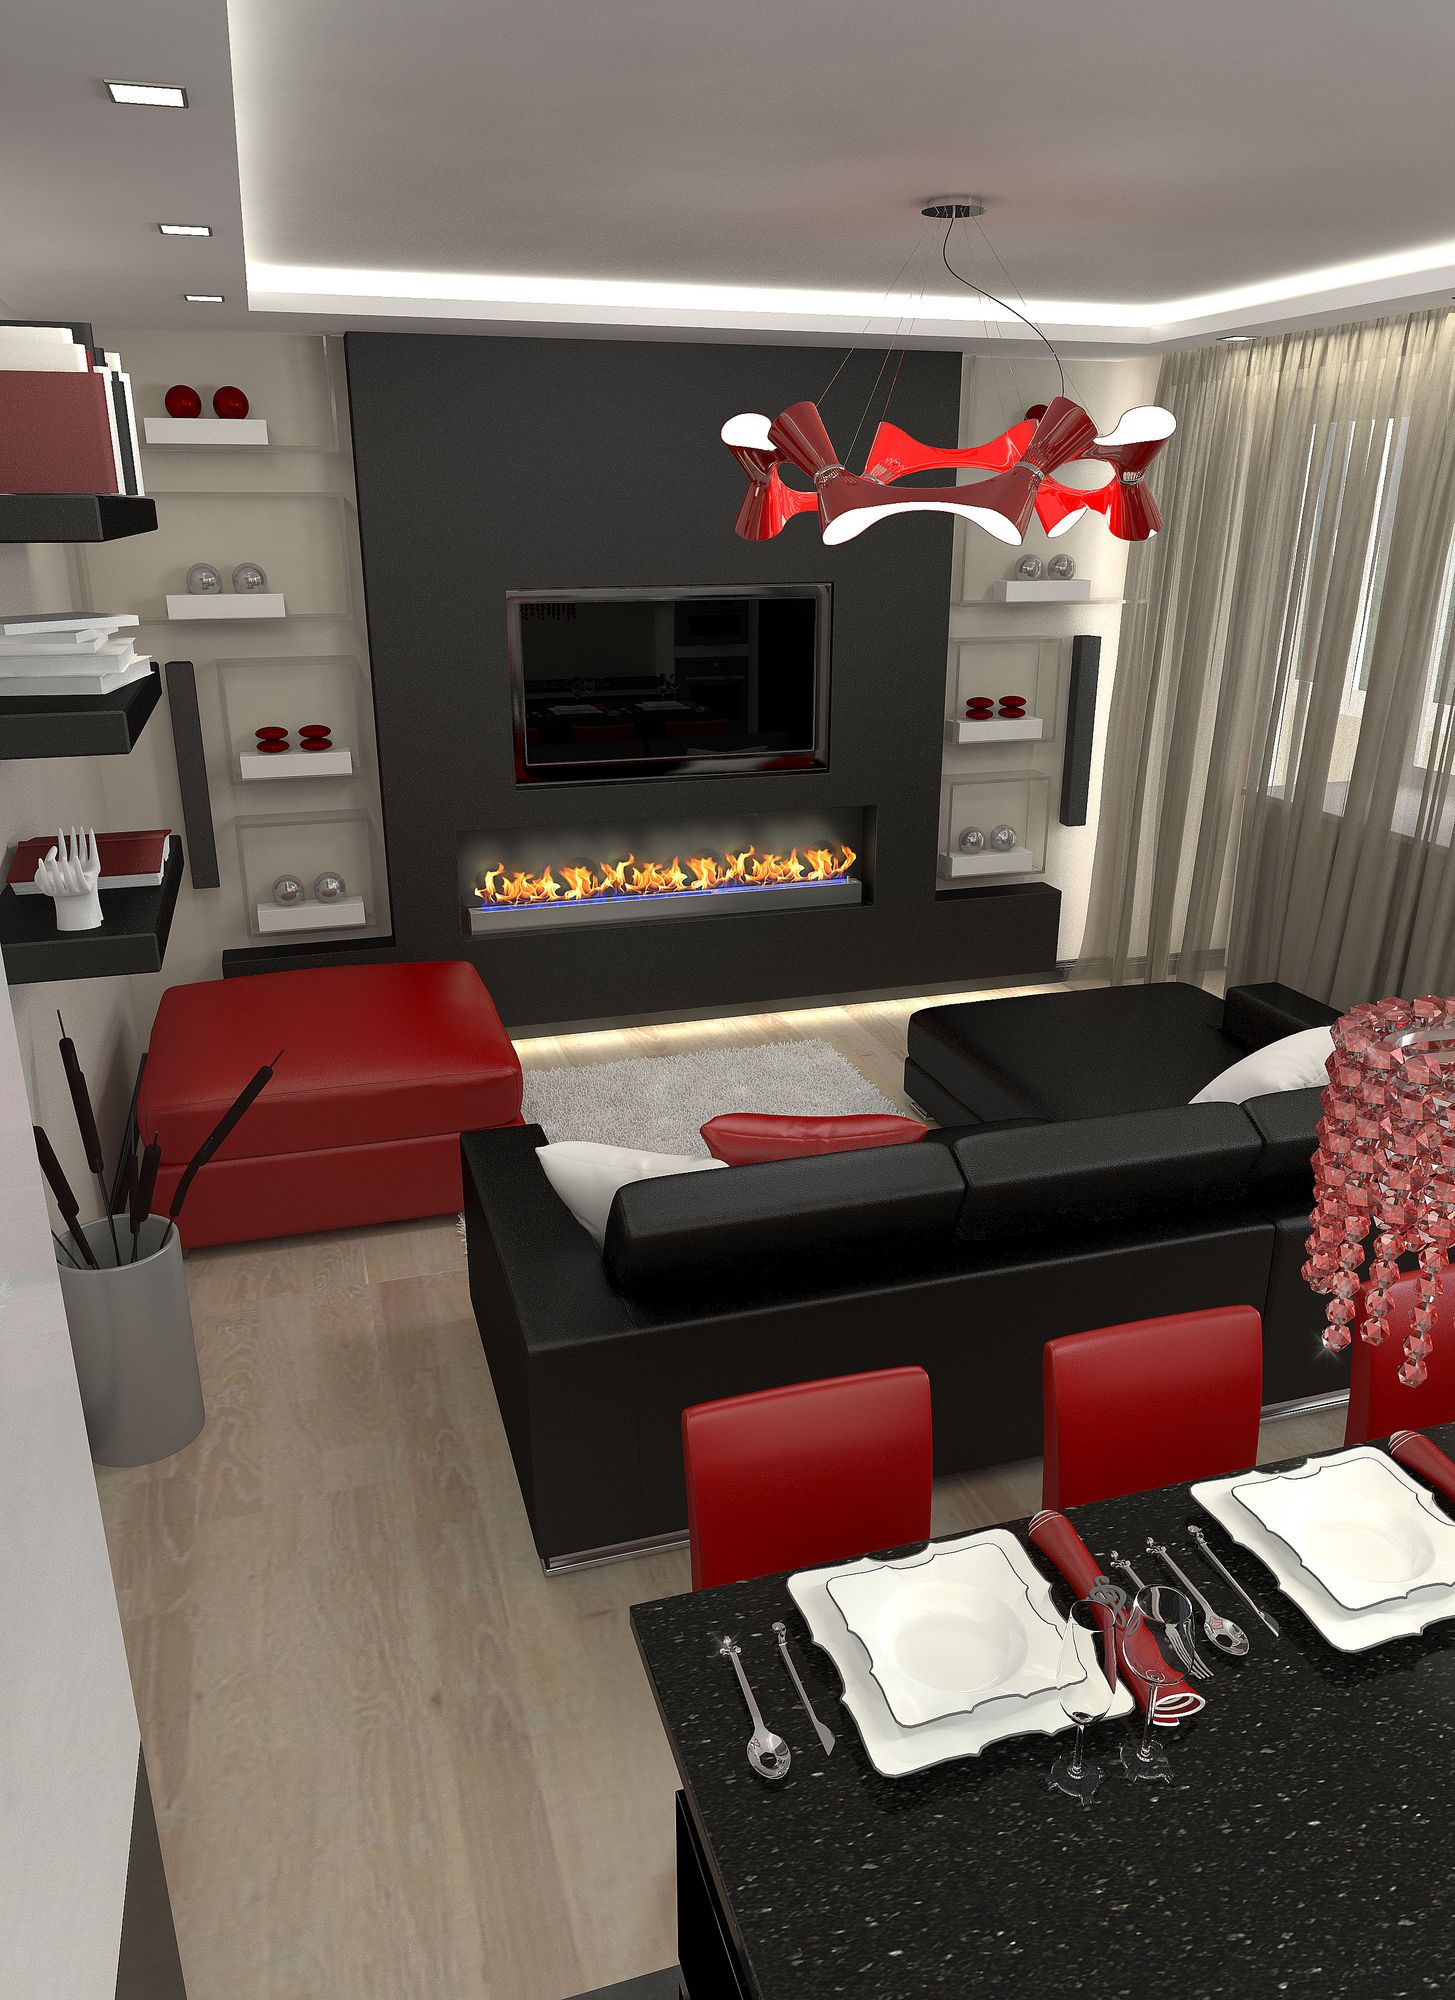 Turn your living room into a lovely space that's relaxing yet functional by selecting the right lighting. Pin by Kim Horvath on Future home | Black, red living room ...